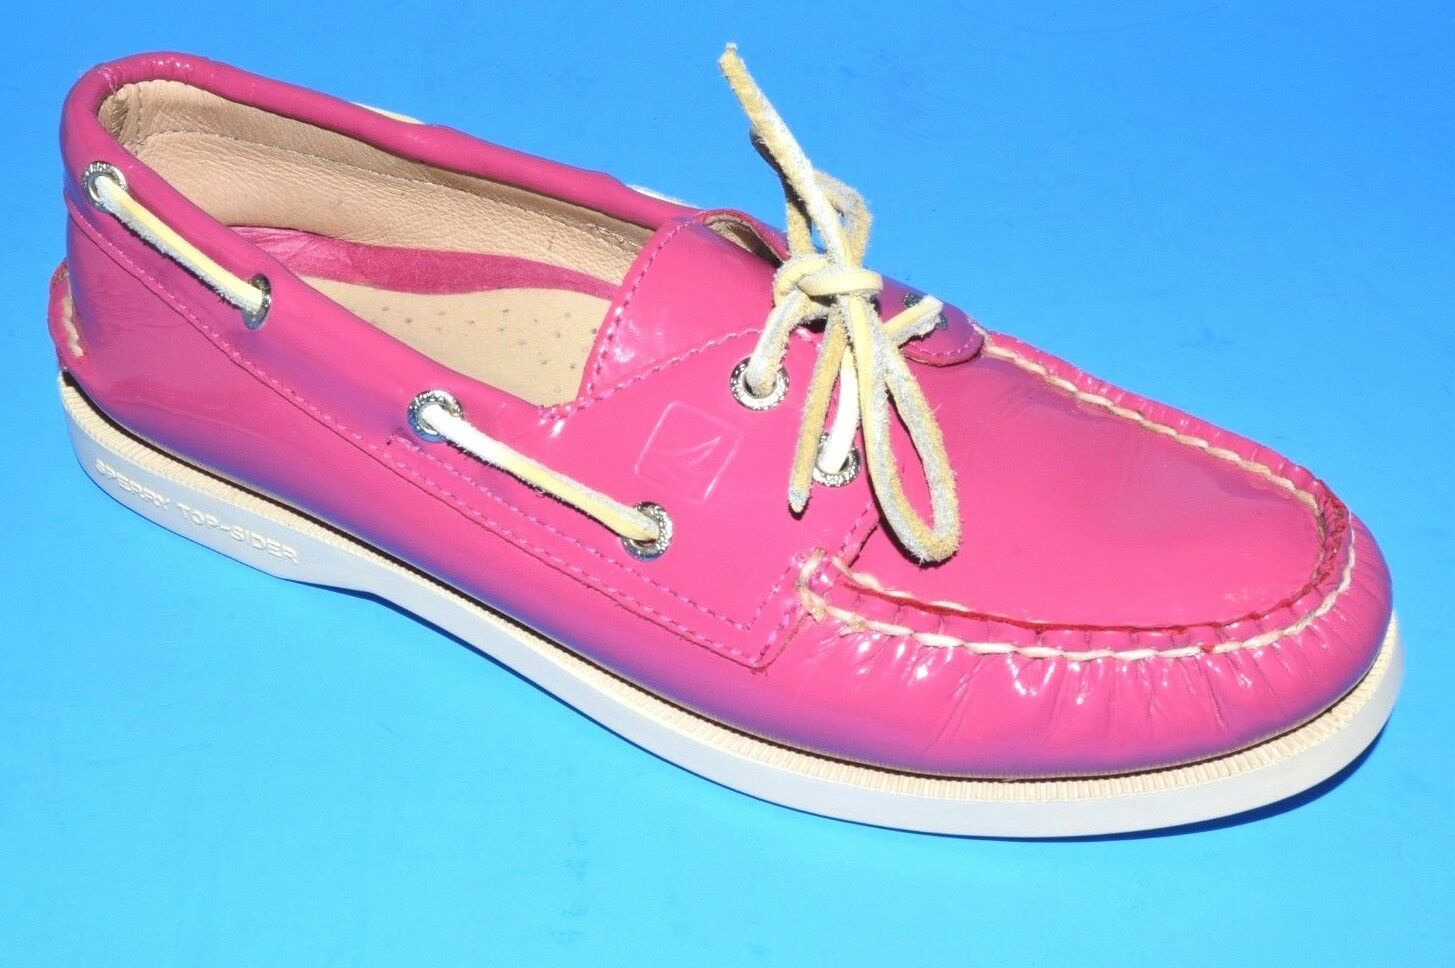 SPERRY TOP-SIDER BOAT SHOE, PINK PATENT LEATHER, SIZE 6 M